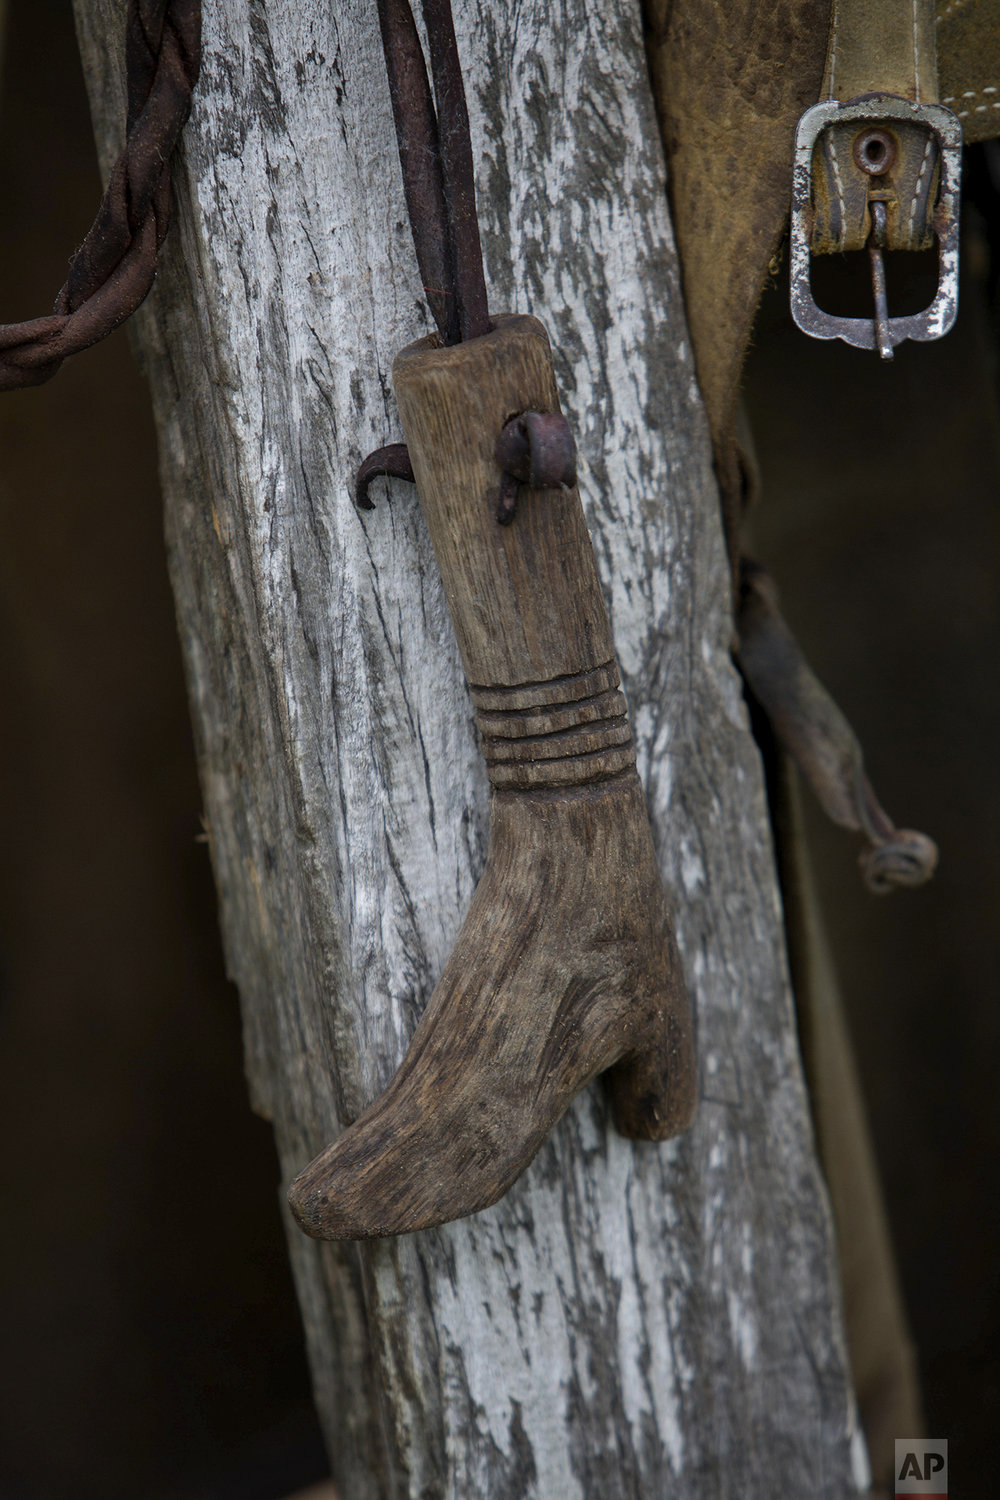 In this May 16, 2017 photo, a handmade whip handle, in the shape of a boot, hangs in a cowboy camp in Corumba, in the Pantanal wetlands of Mato Grosso do Sul state, Brazil. The whip was made by one of the ranch hands who helps round up cattle. (AP Photo/Eraldo Peres)